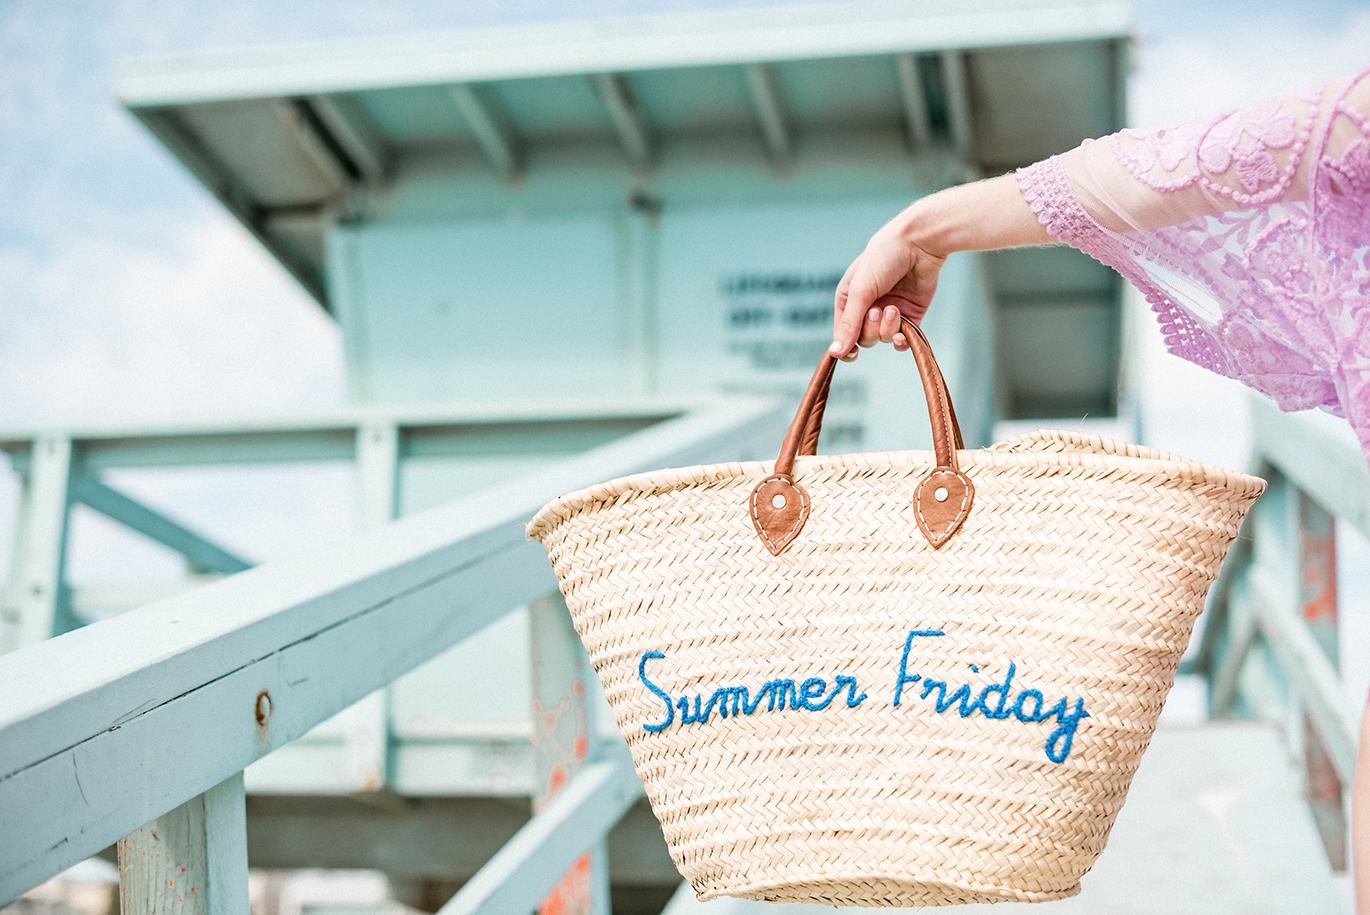 Summer Friday beach bag